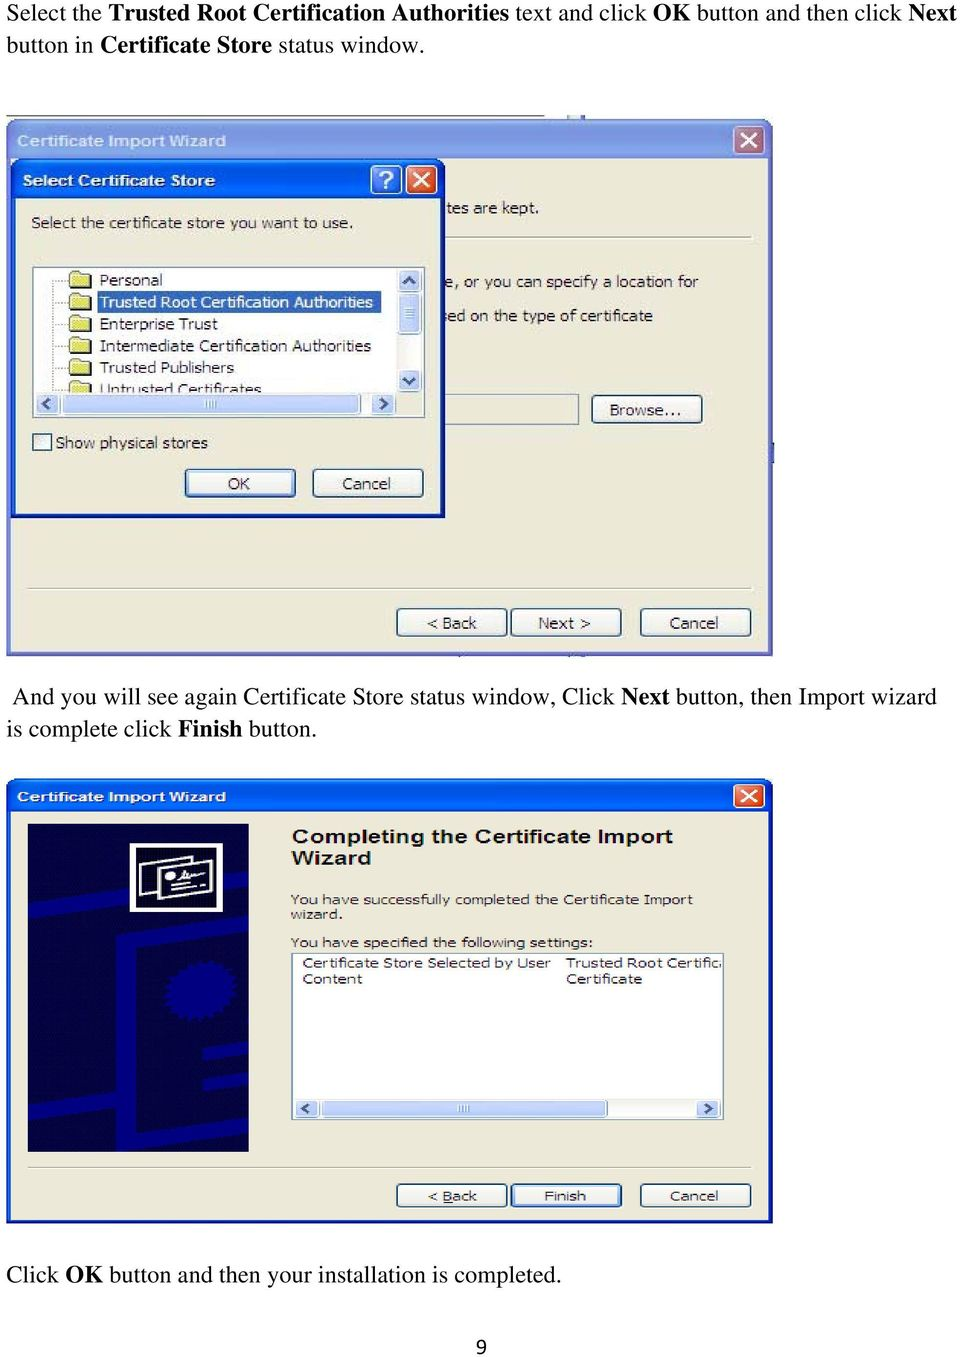 And you will see again Certificate Store status window, Click Next button, then